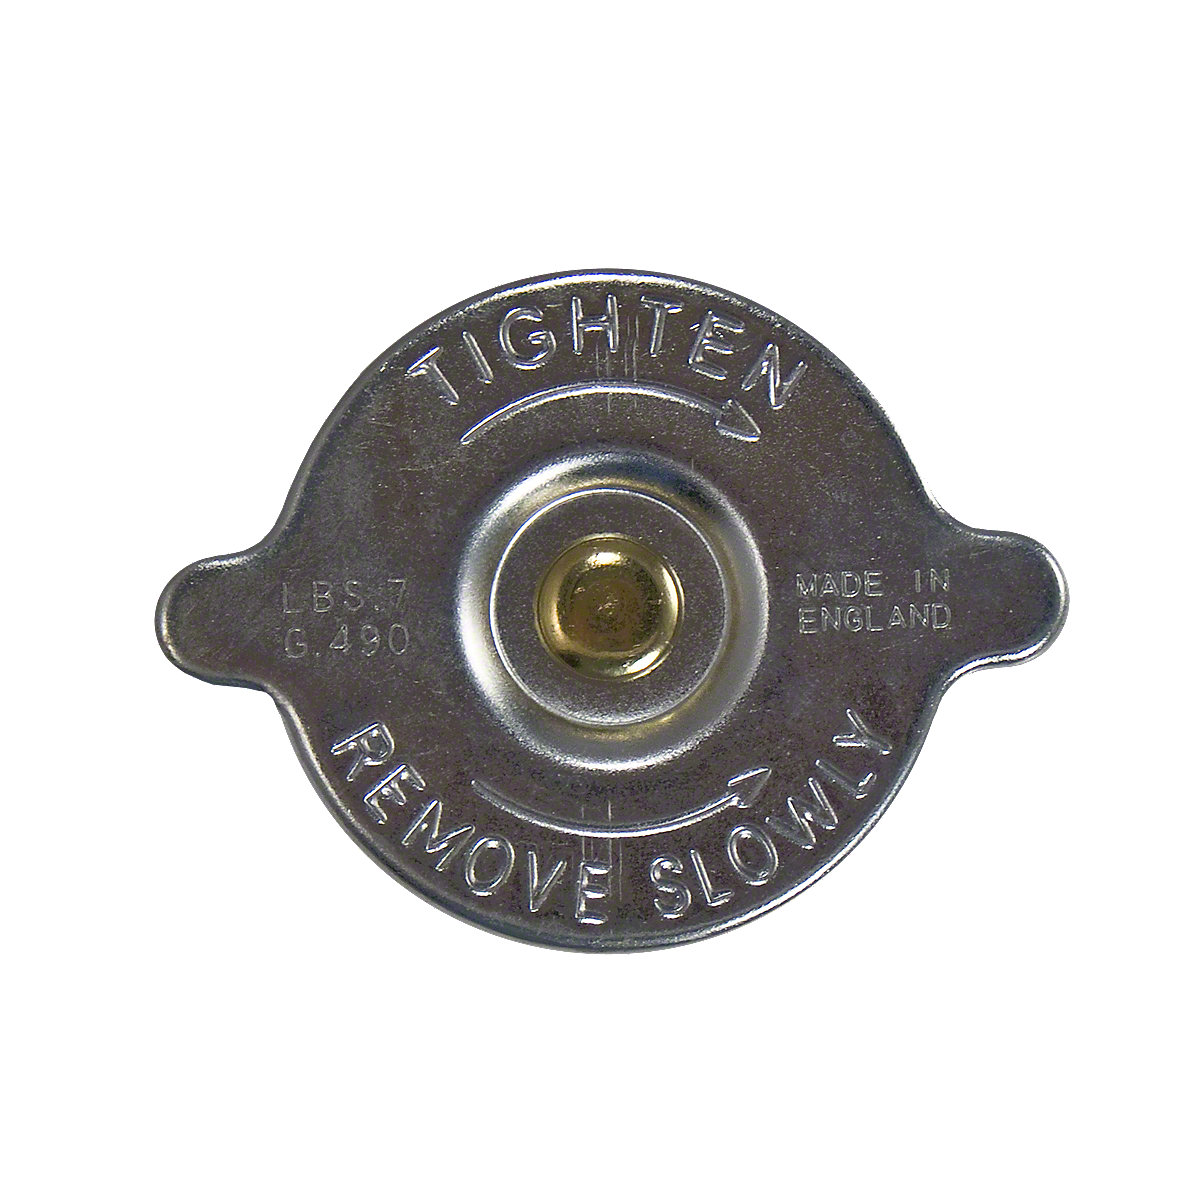 Radiator Cap With Gasket Fits Oliver: 770, 880, 1550, 1600, 1650, 1750, 1755, 1800, 1850, 1855, 1950, 1955, White: 2-50, 2-60, 2-70, 2-85, 2-105, 2-110, 2-150, 4-150, and 4-180.